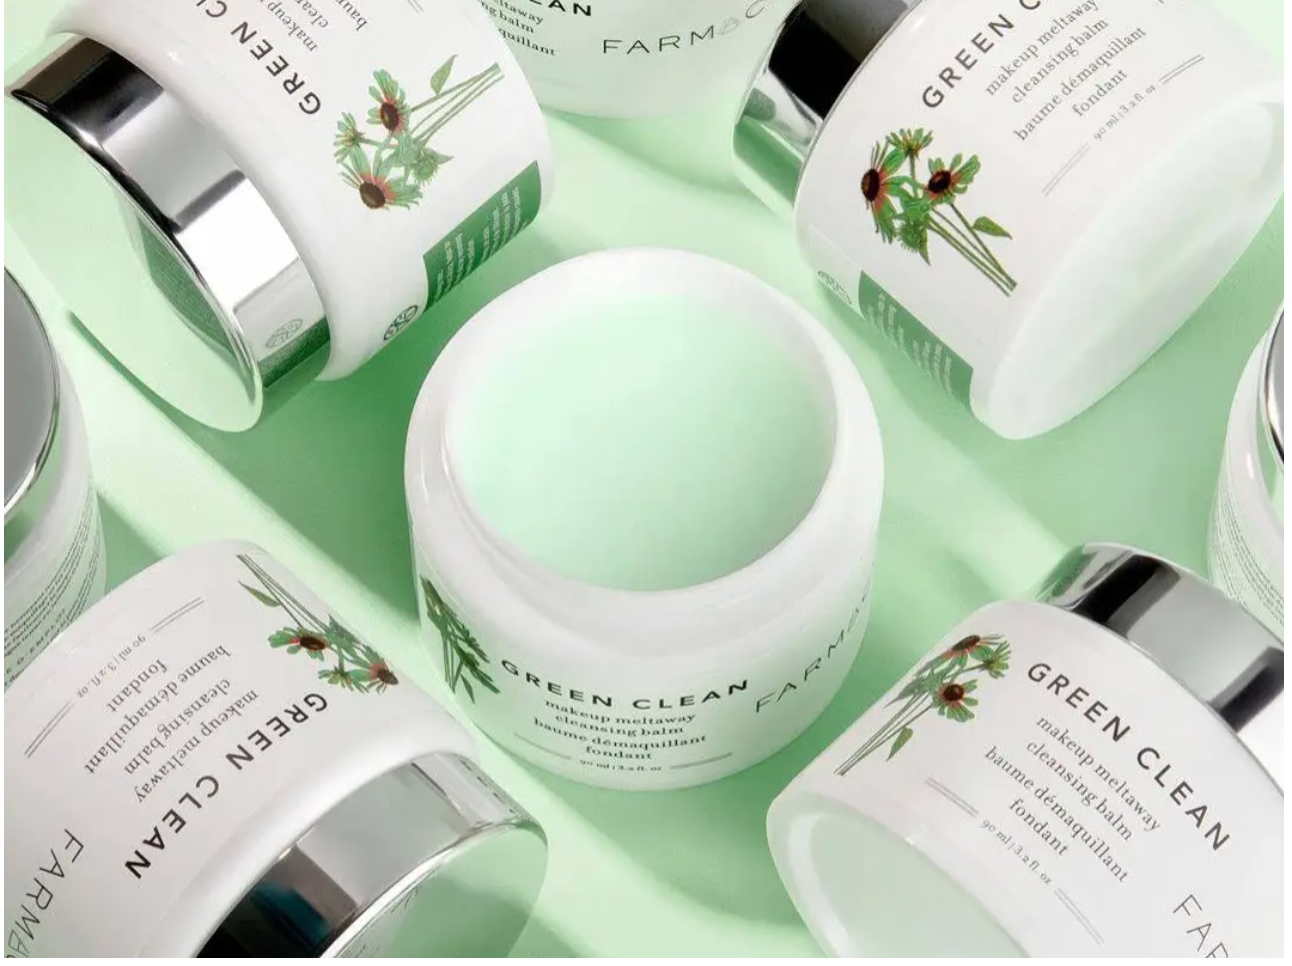 Farmacy's Green Clean Make-up Meltaway Cleansing Balm